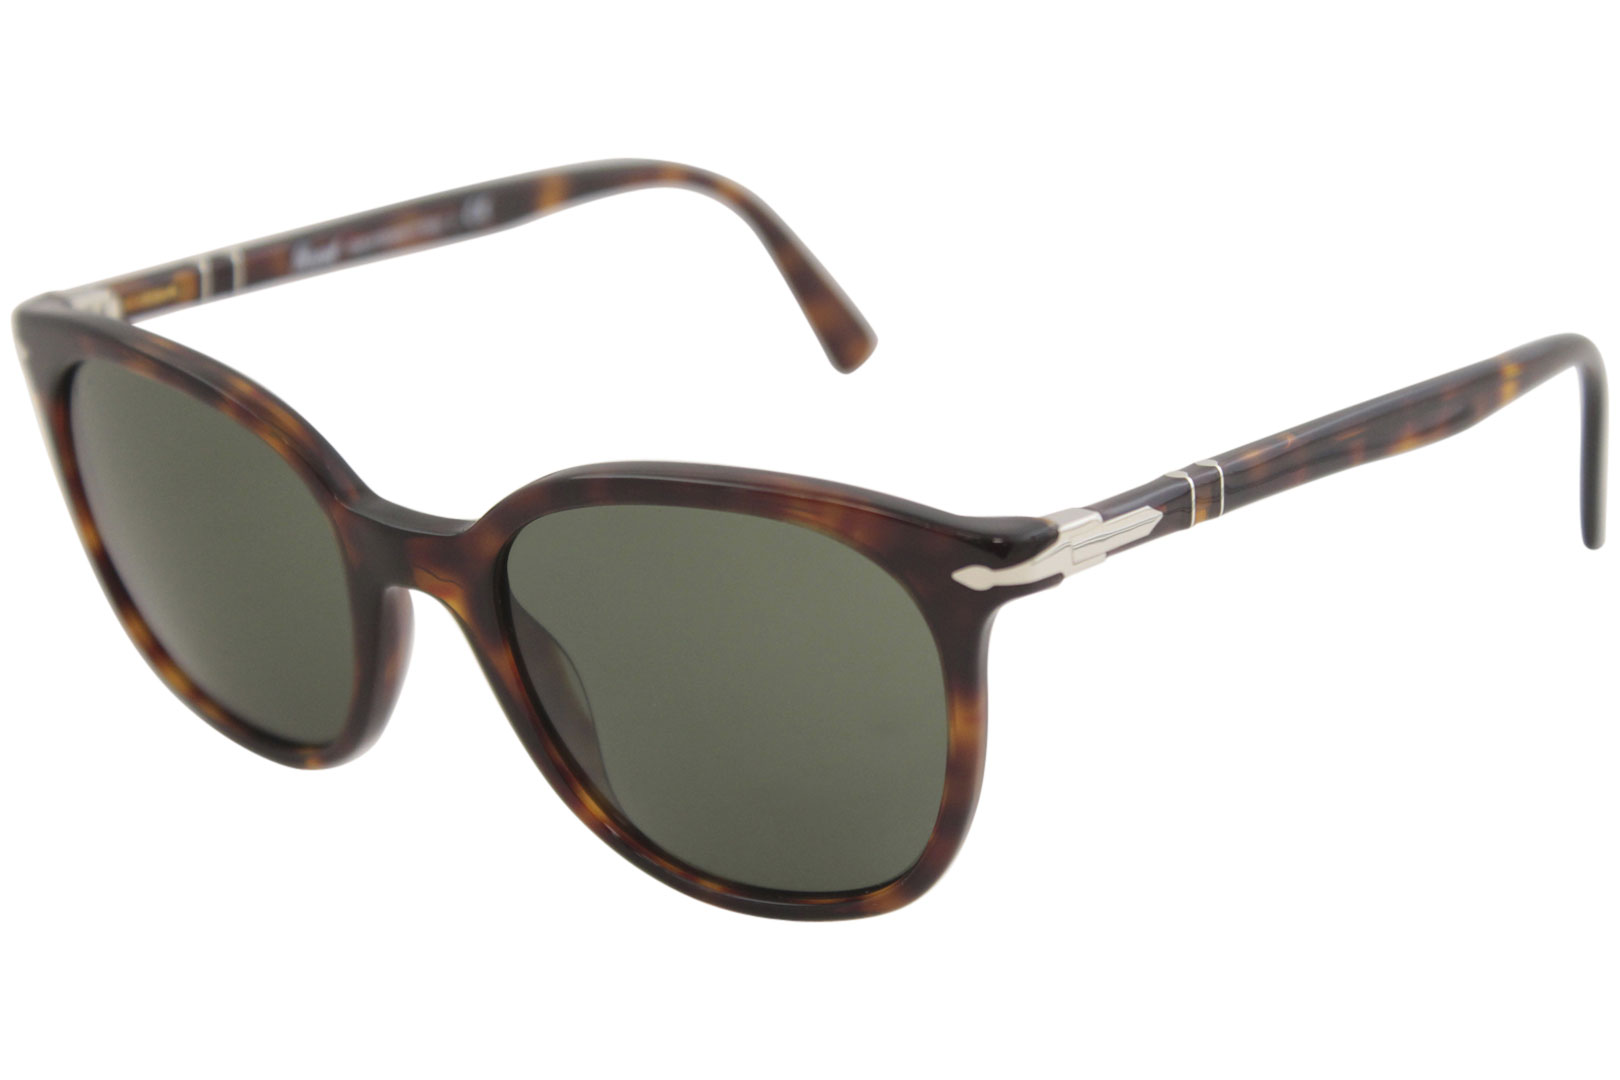 8b94247ed4 Persol Men s PO3216S PO 3216 S 24 31 Havana Fashion Square ...